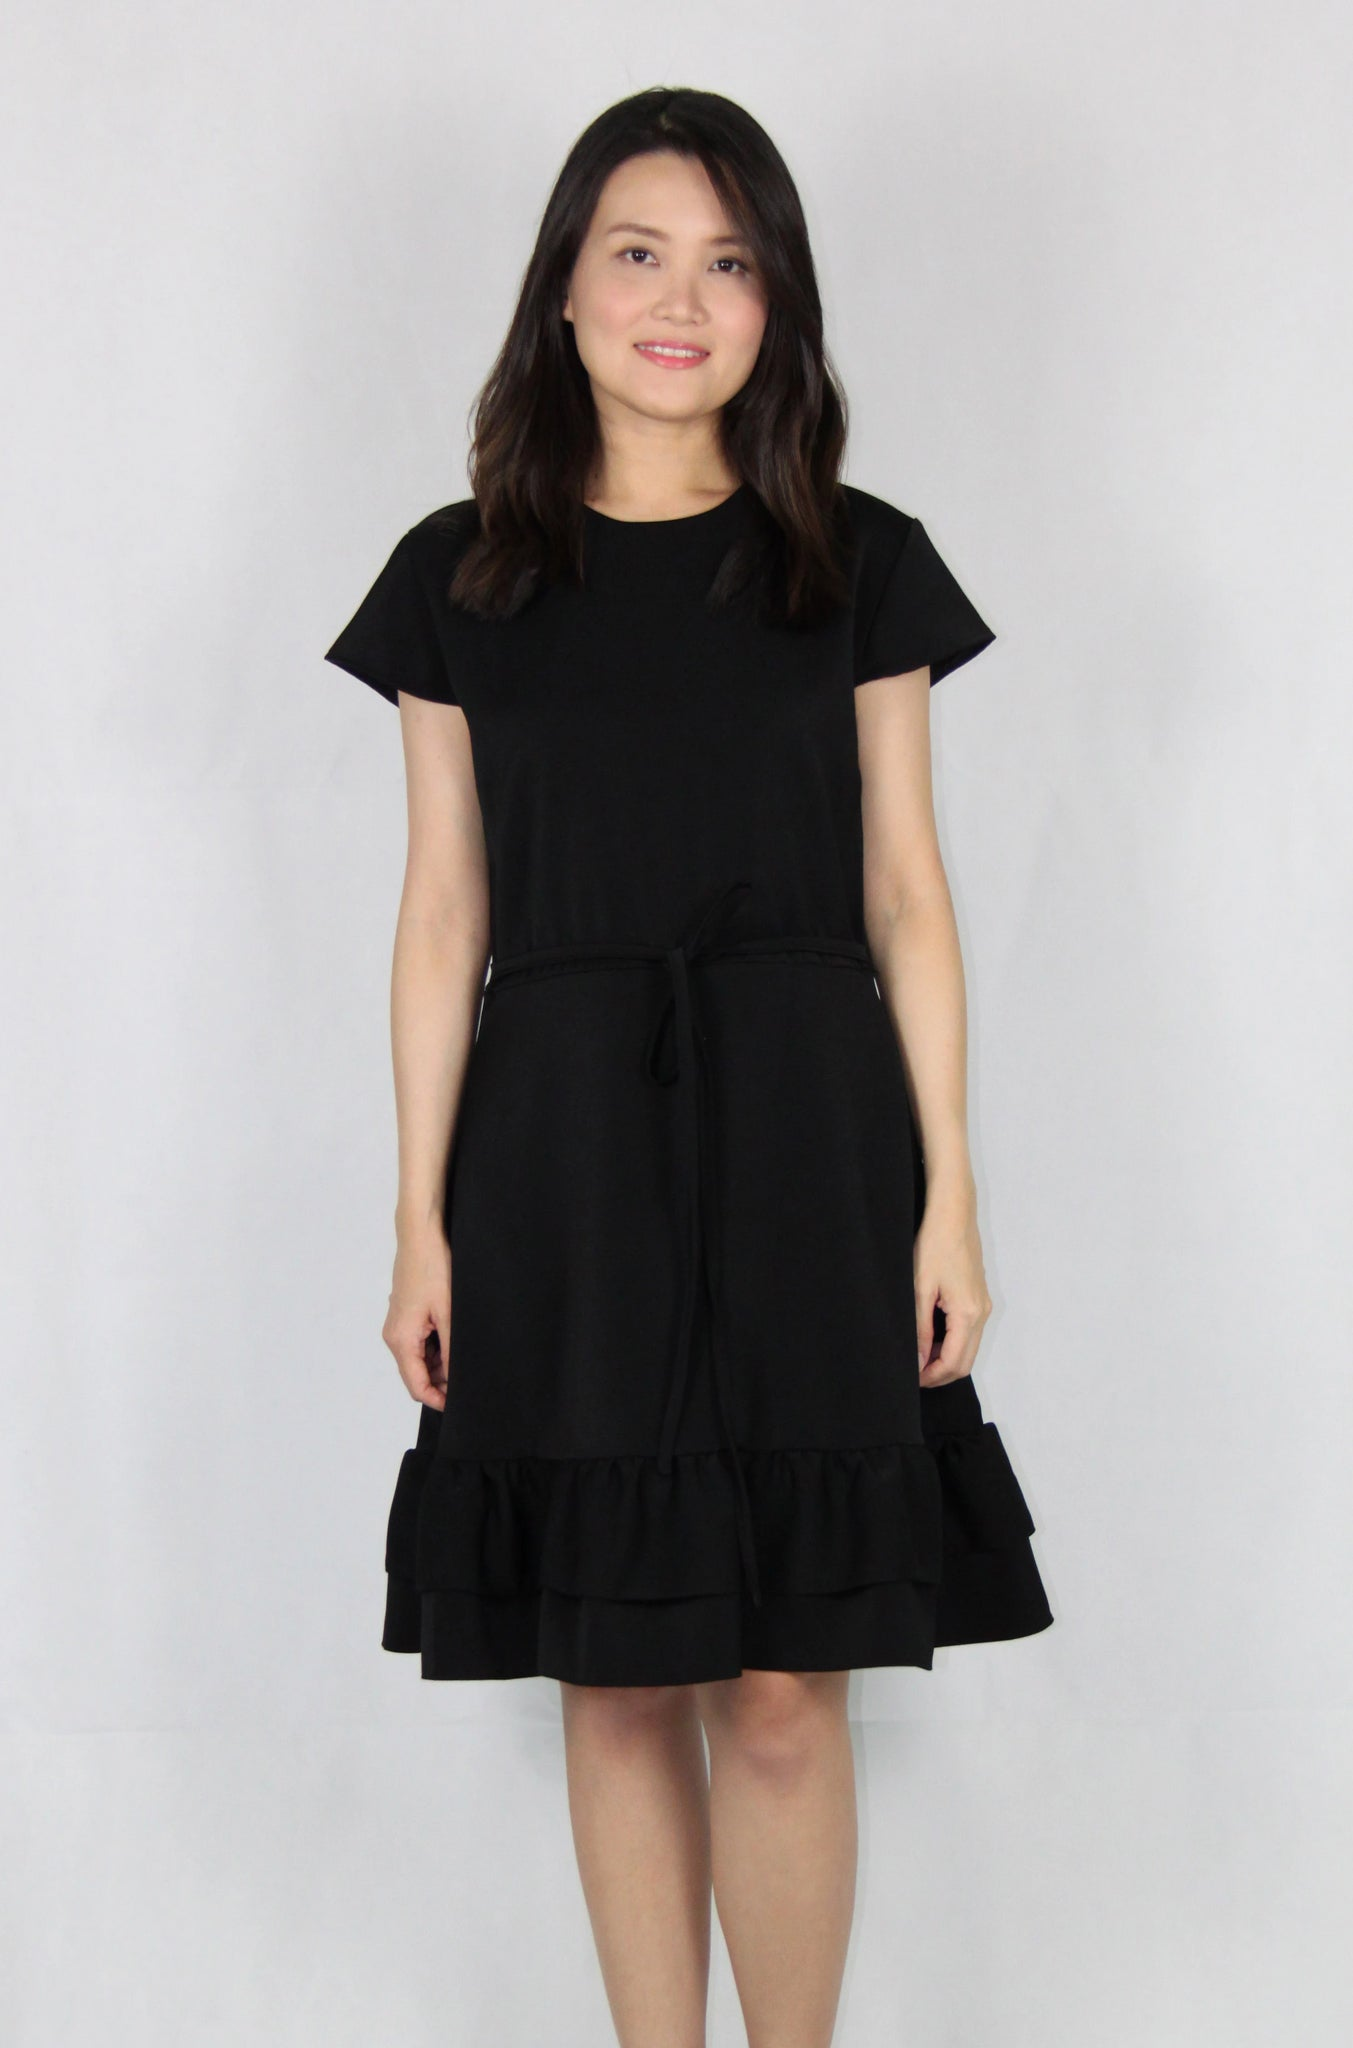 Cap Sleeves Double Layer Front Tie Dress in Black